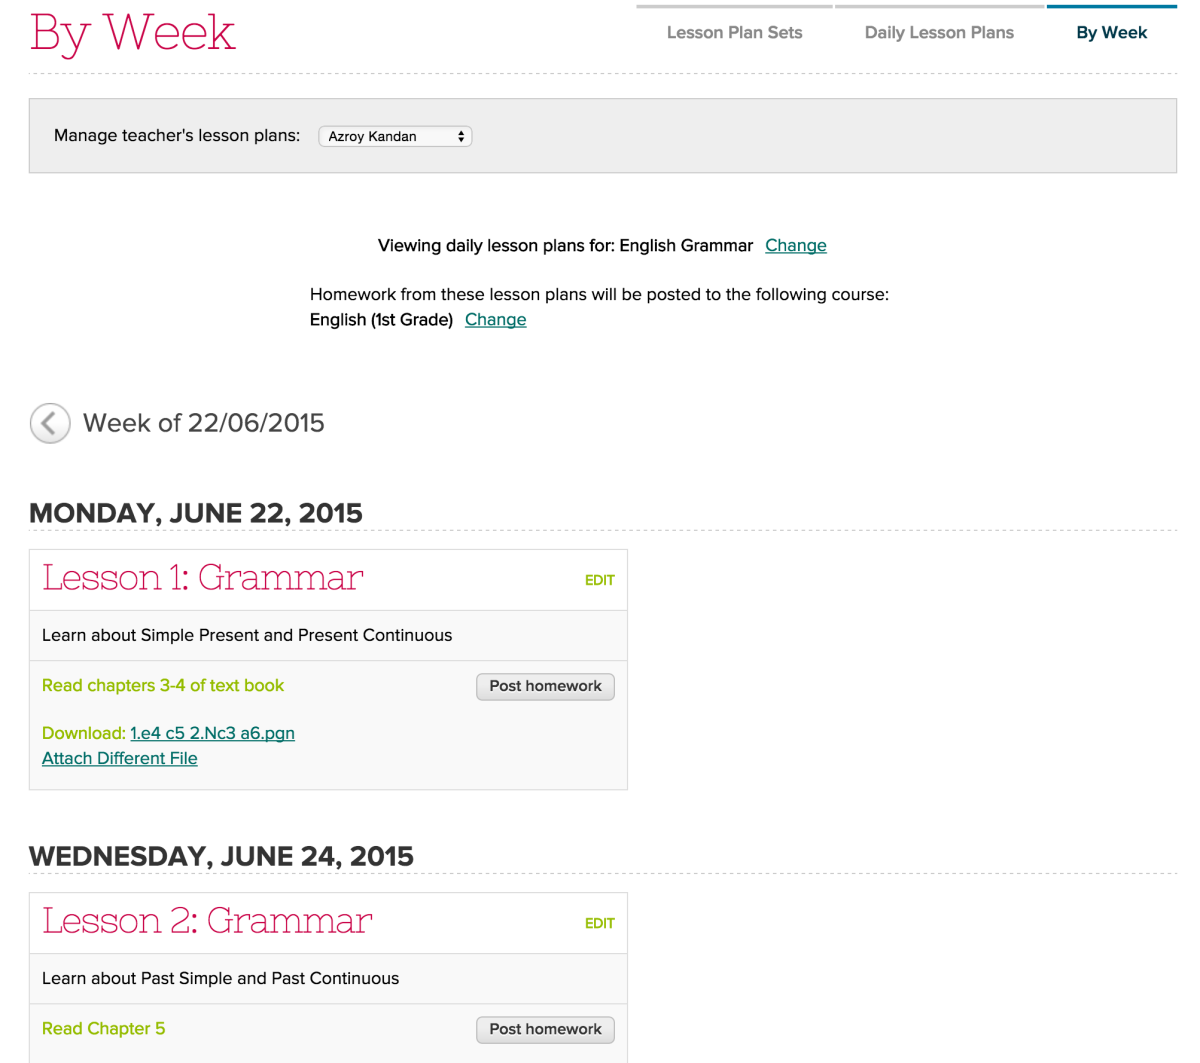 View Lesson Plans by Week